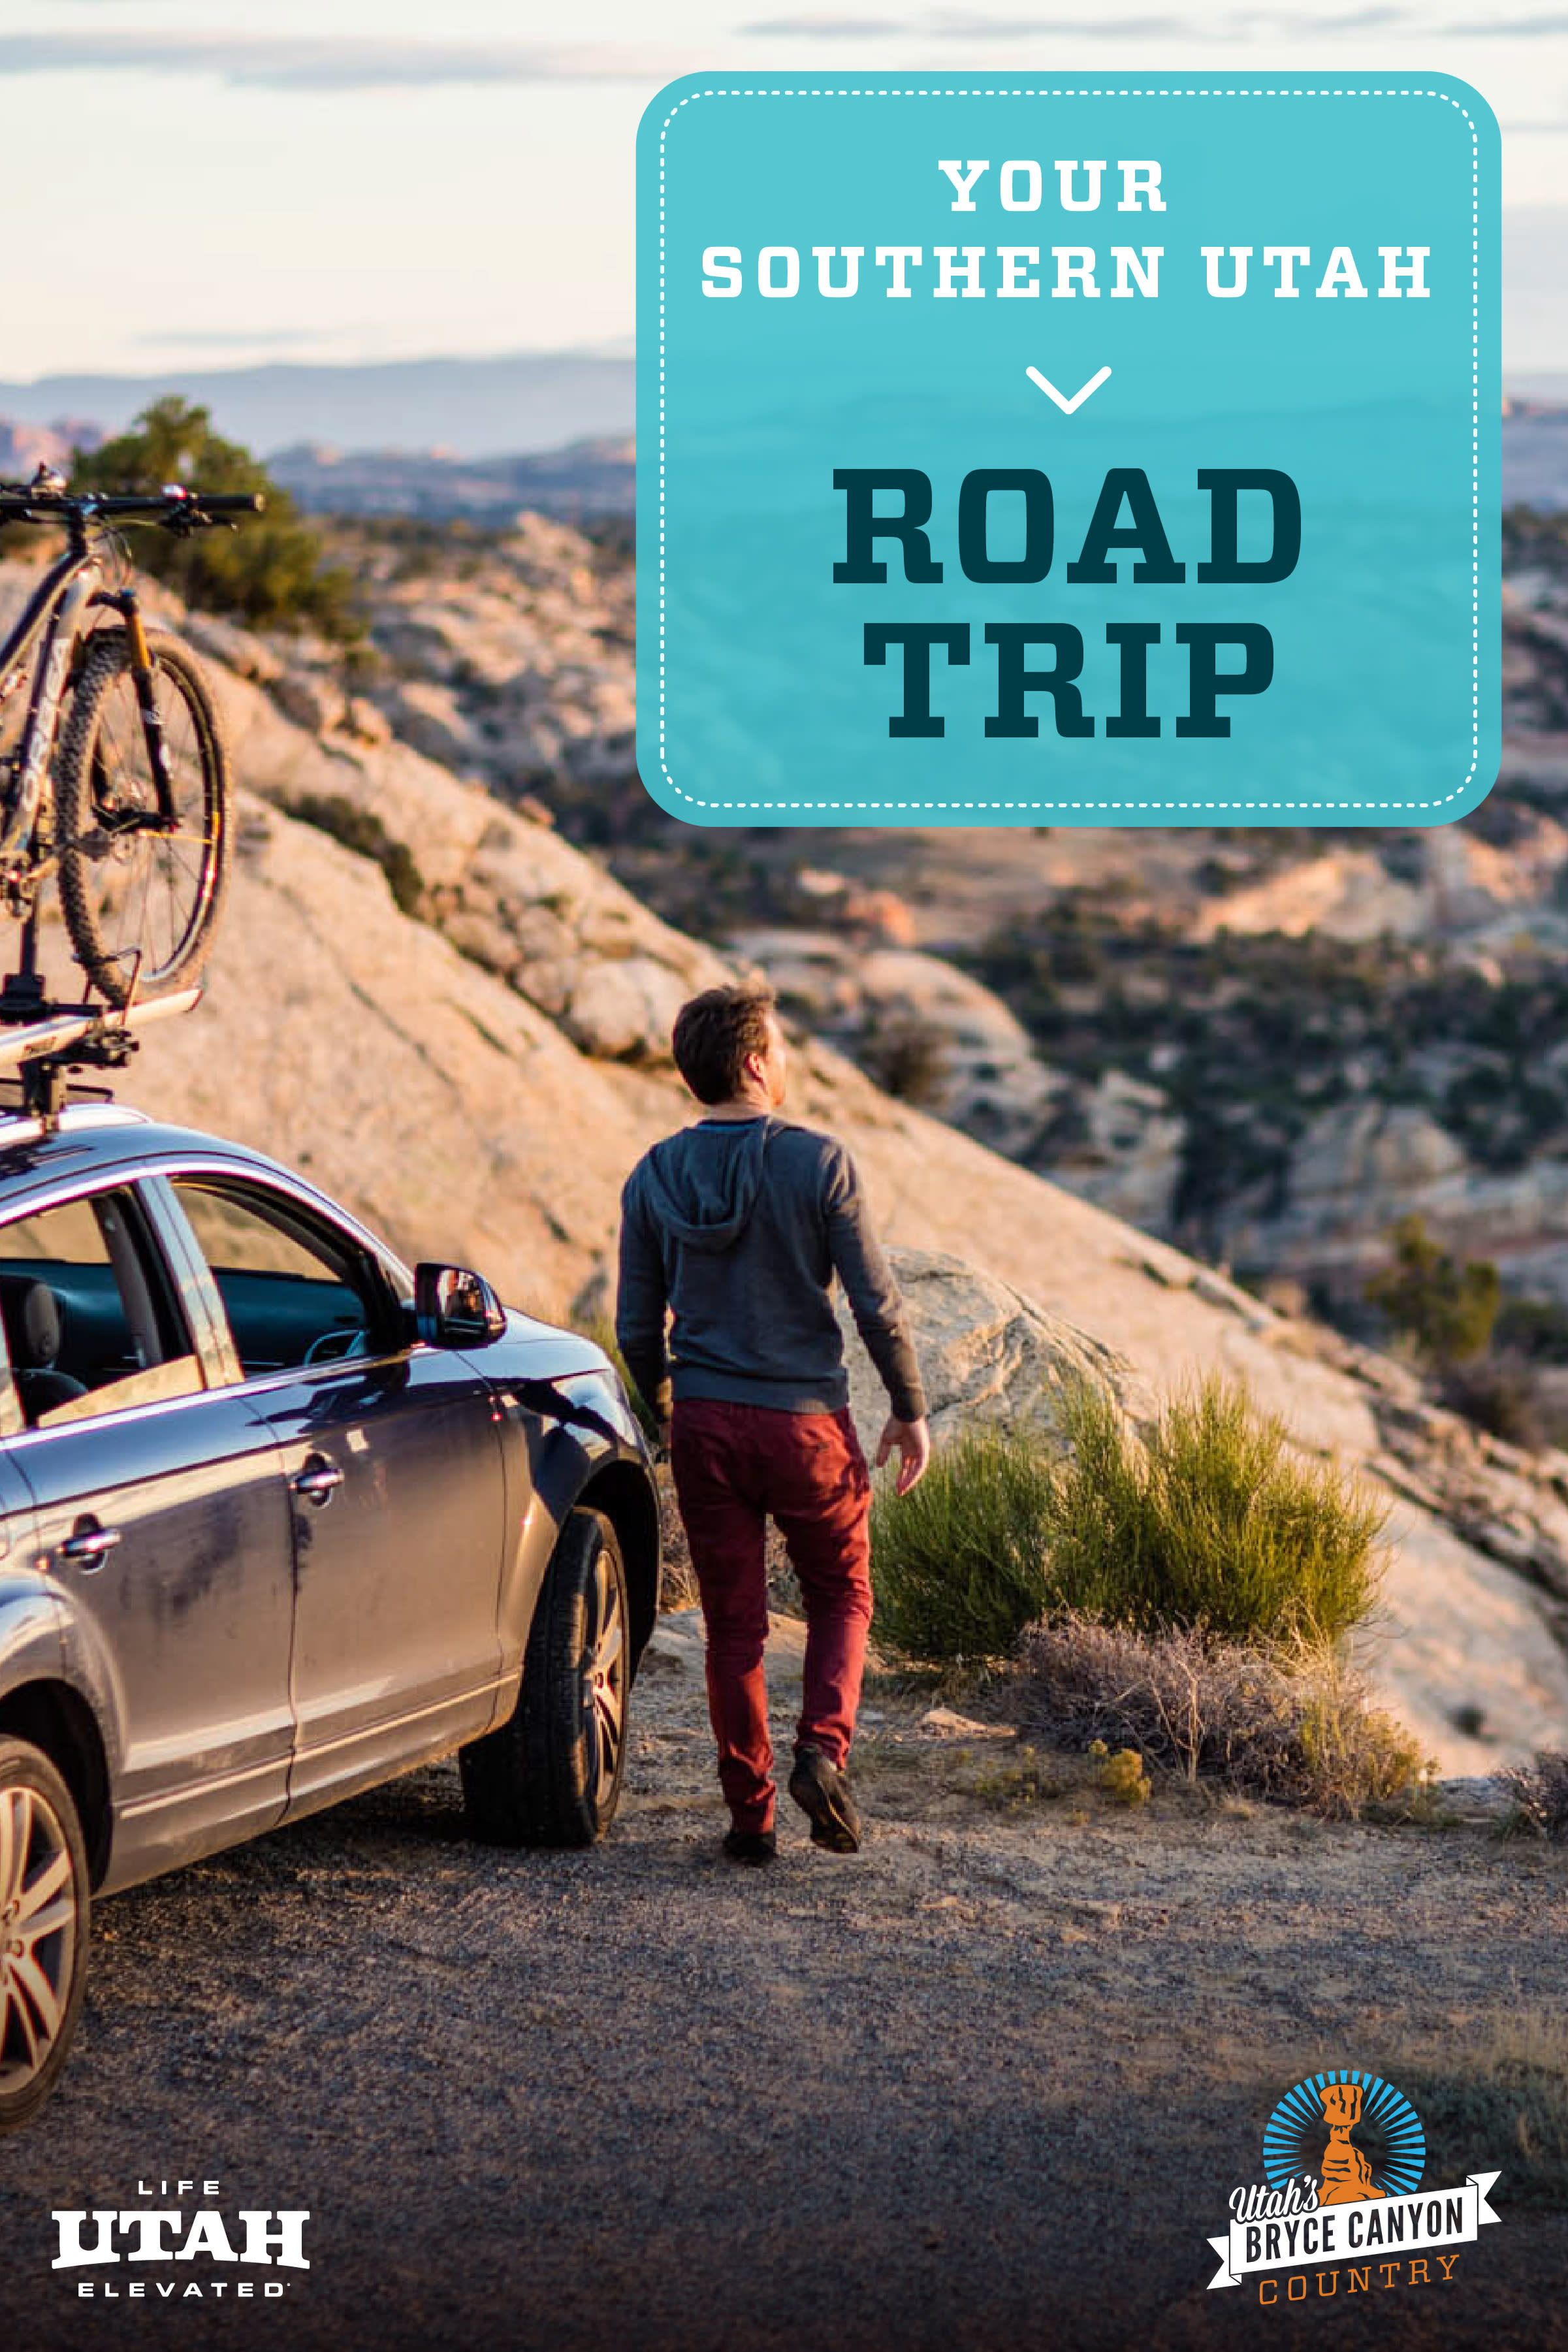 This year, it's time for your Southern Utah road trip through Bryce Canyon Country. Take the best scenic byways including Utah's Patchwork Parkway, Utah's Heritage Highways and the All-American Road, National Scenic Byway 12.